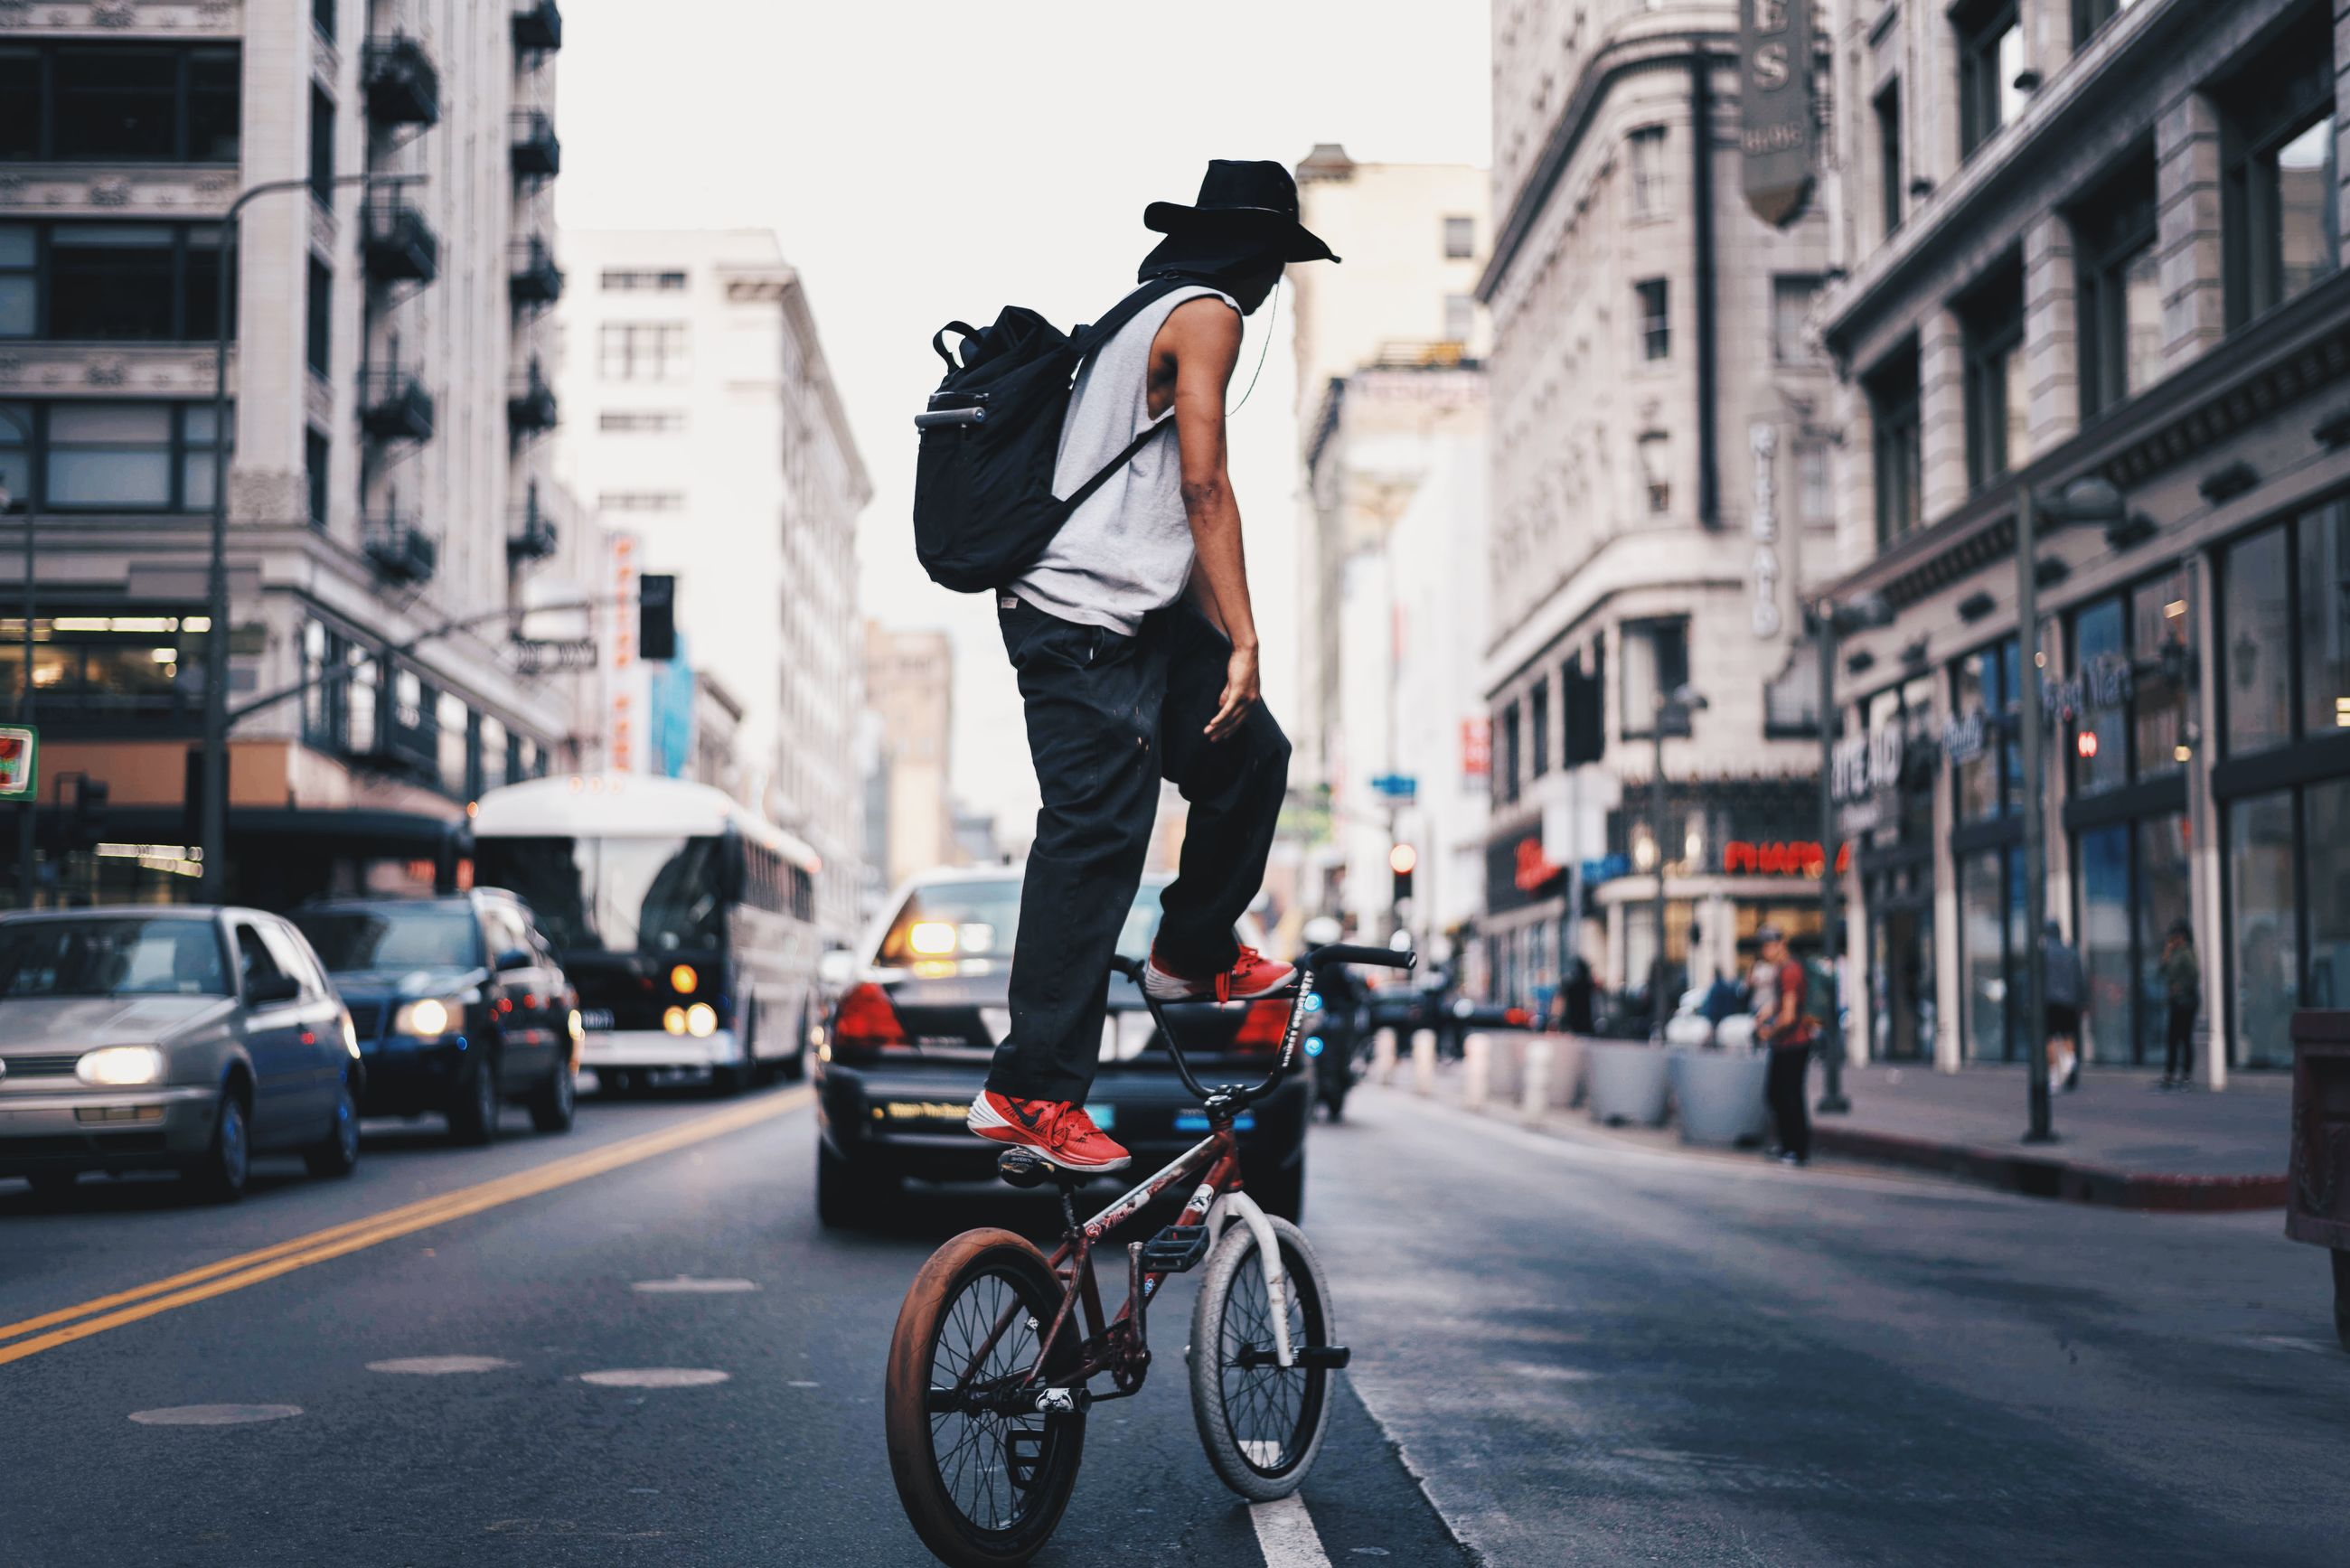 city, street, city street, one man only, city life, cycling, bicycle, adults only, men, only men, travel, travel destinations, transportation, adult, built structure, outdoors, building exterior, one person, people, day